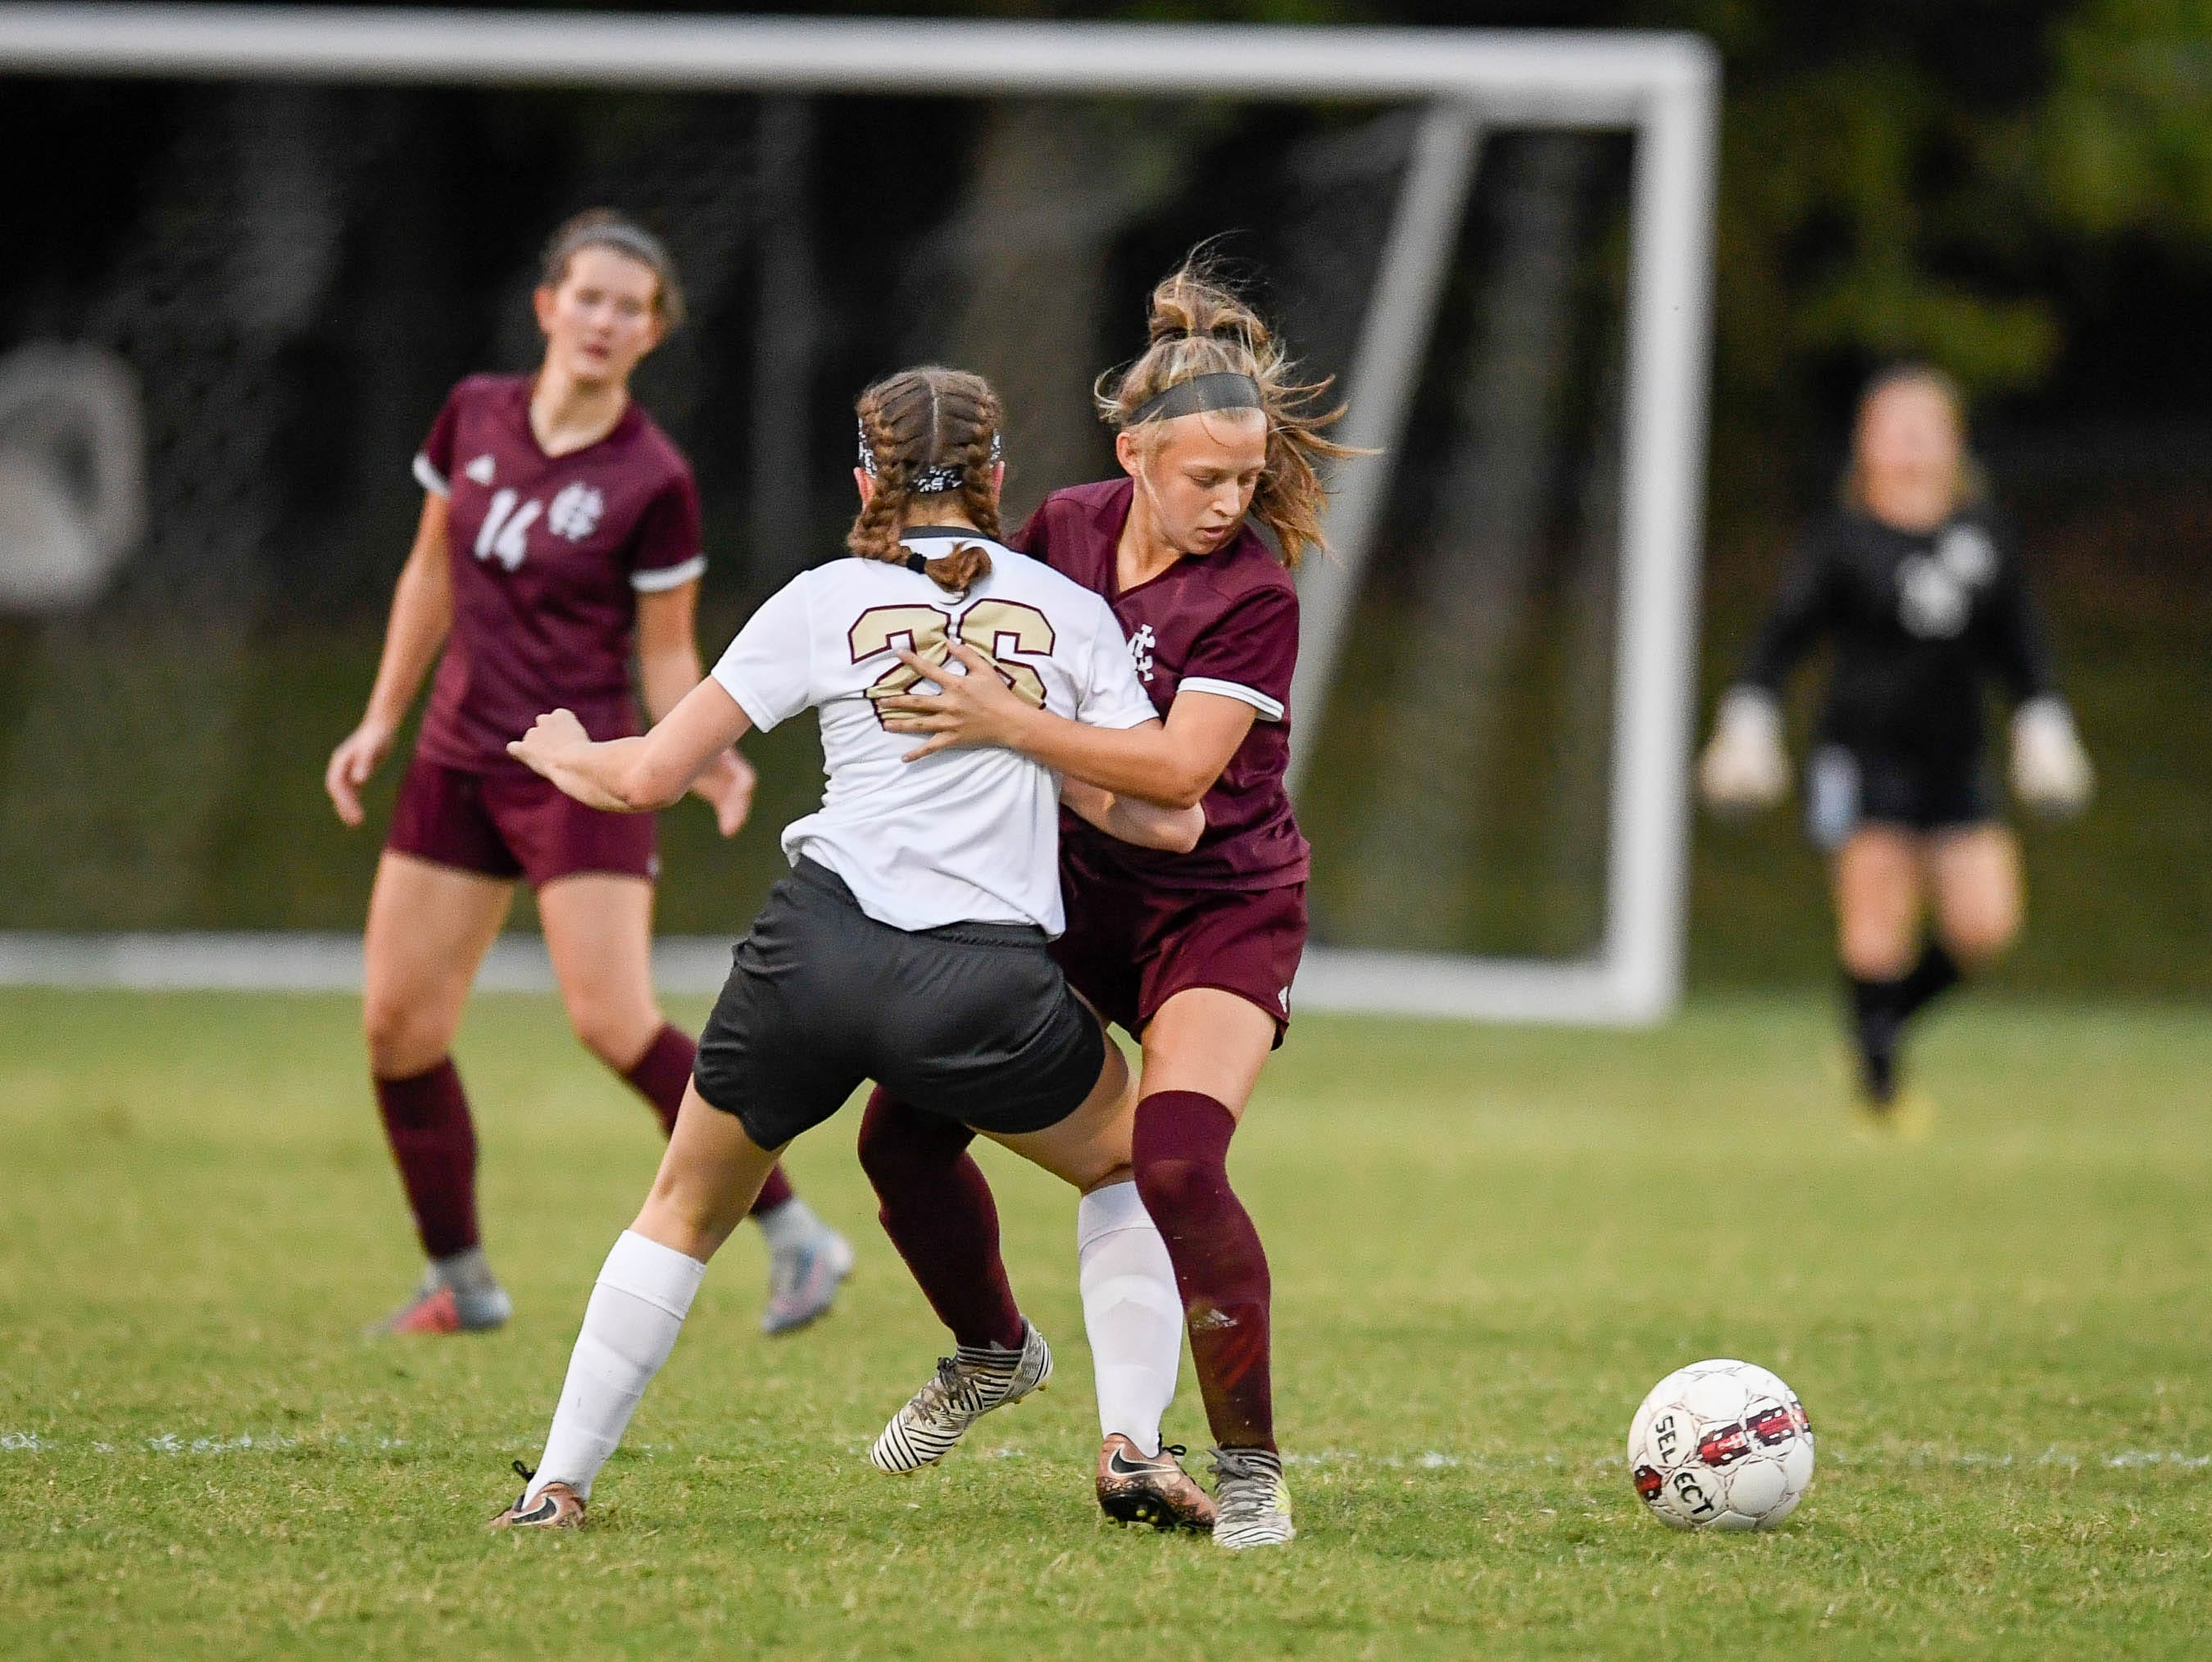 Webster's Marissa Austin (26)  and Henderson's Morgan Greene (20) battle for control of the ball as the Henderson County Lady Colonels play the Webster County Lady Trojans in the Sixth District Soccer Tournament at Colonel Field Wednesdayt, October 10, 2018.